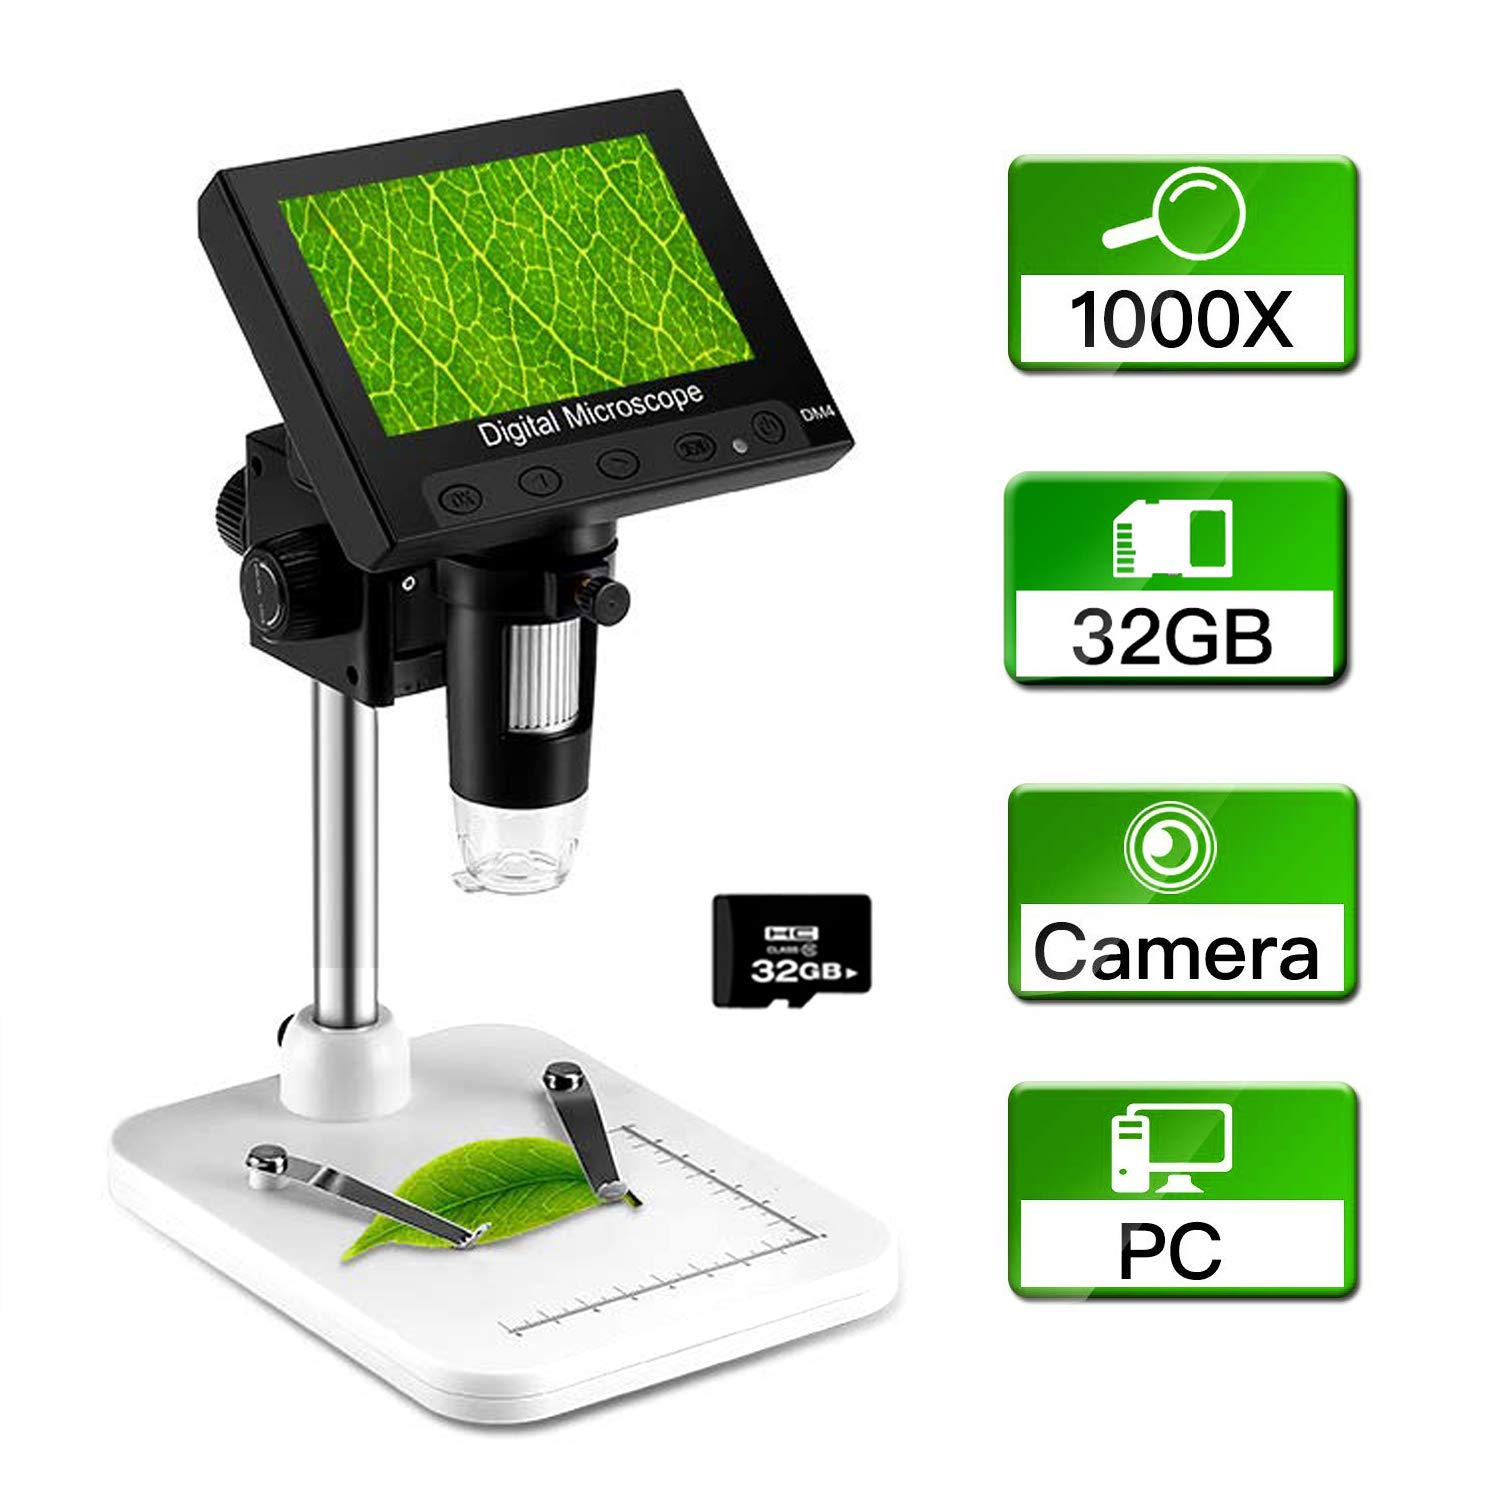 Elikliv 4.3 inch LCD Digital USB Microscope with 32GB Card Camera Video Recorder 1000X Magnification Zoom, 8 Adjustable LED Light, Micro-SD Storage for Repair Soldering